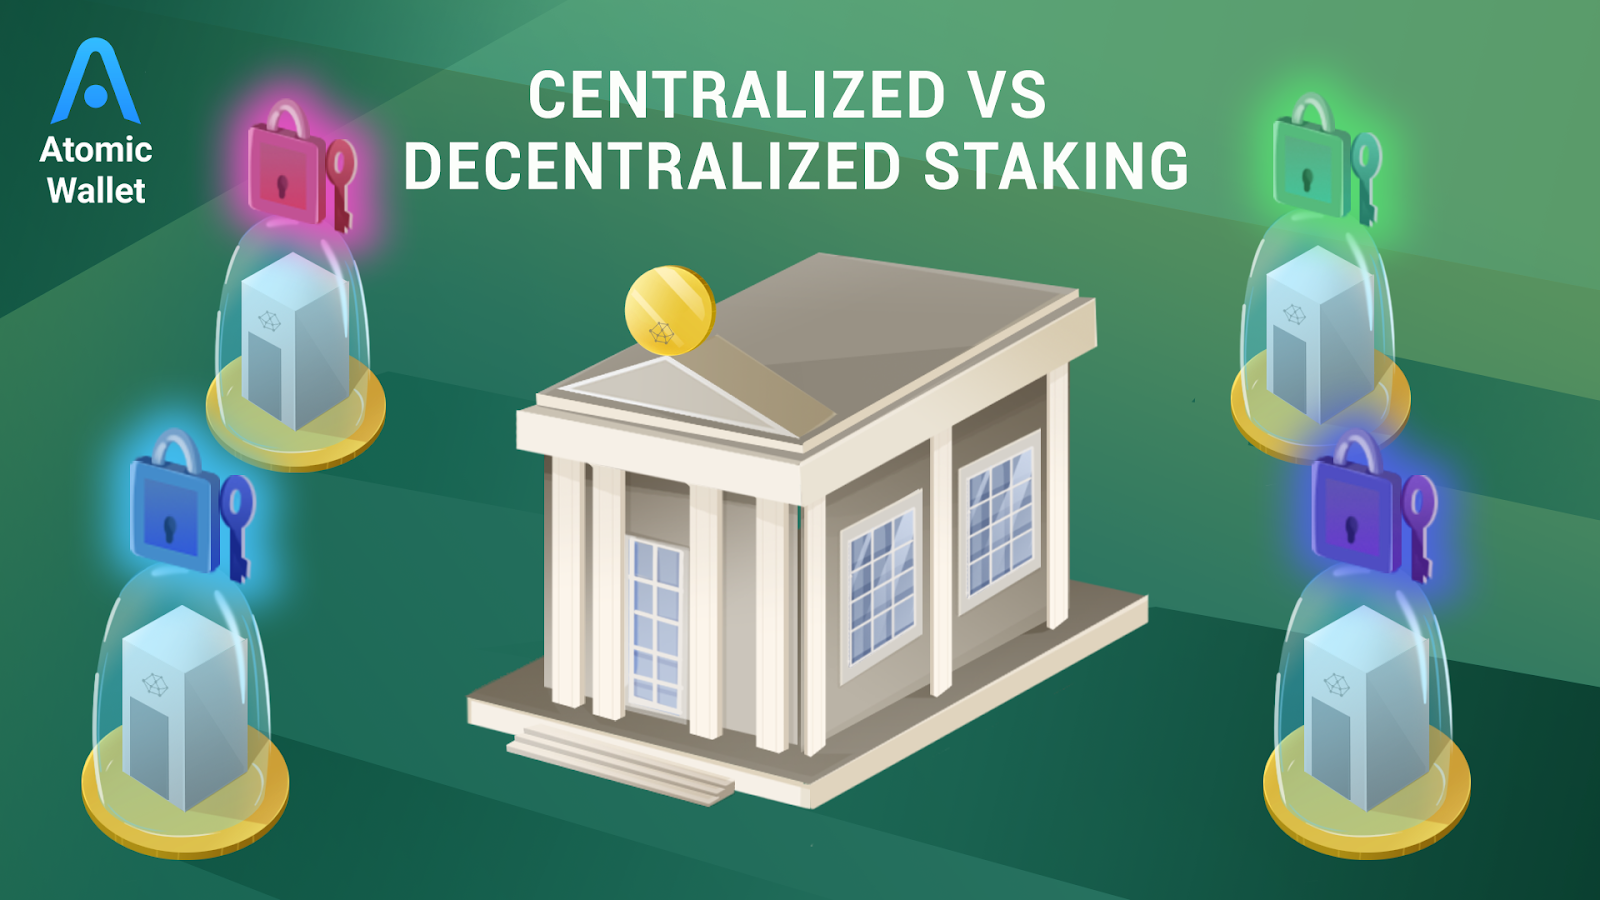 centralized vs decentralized staking